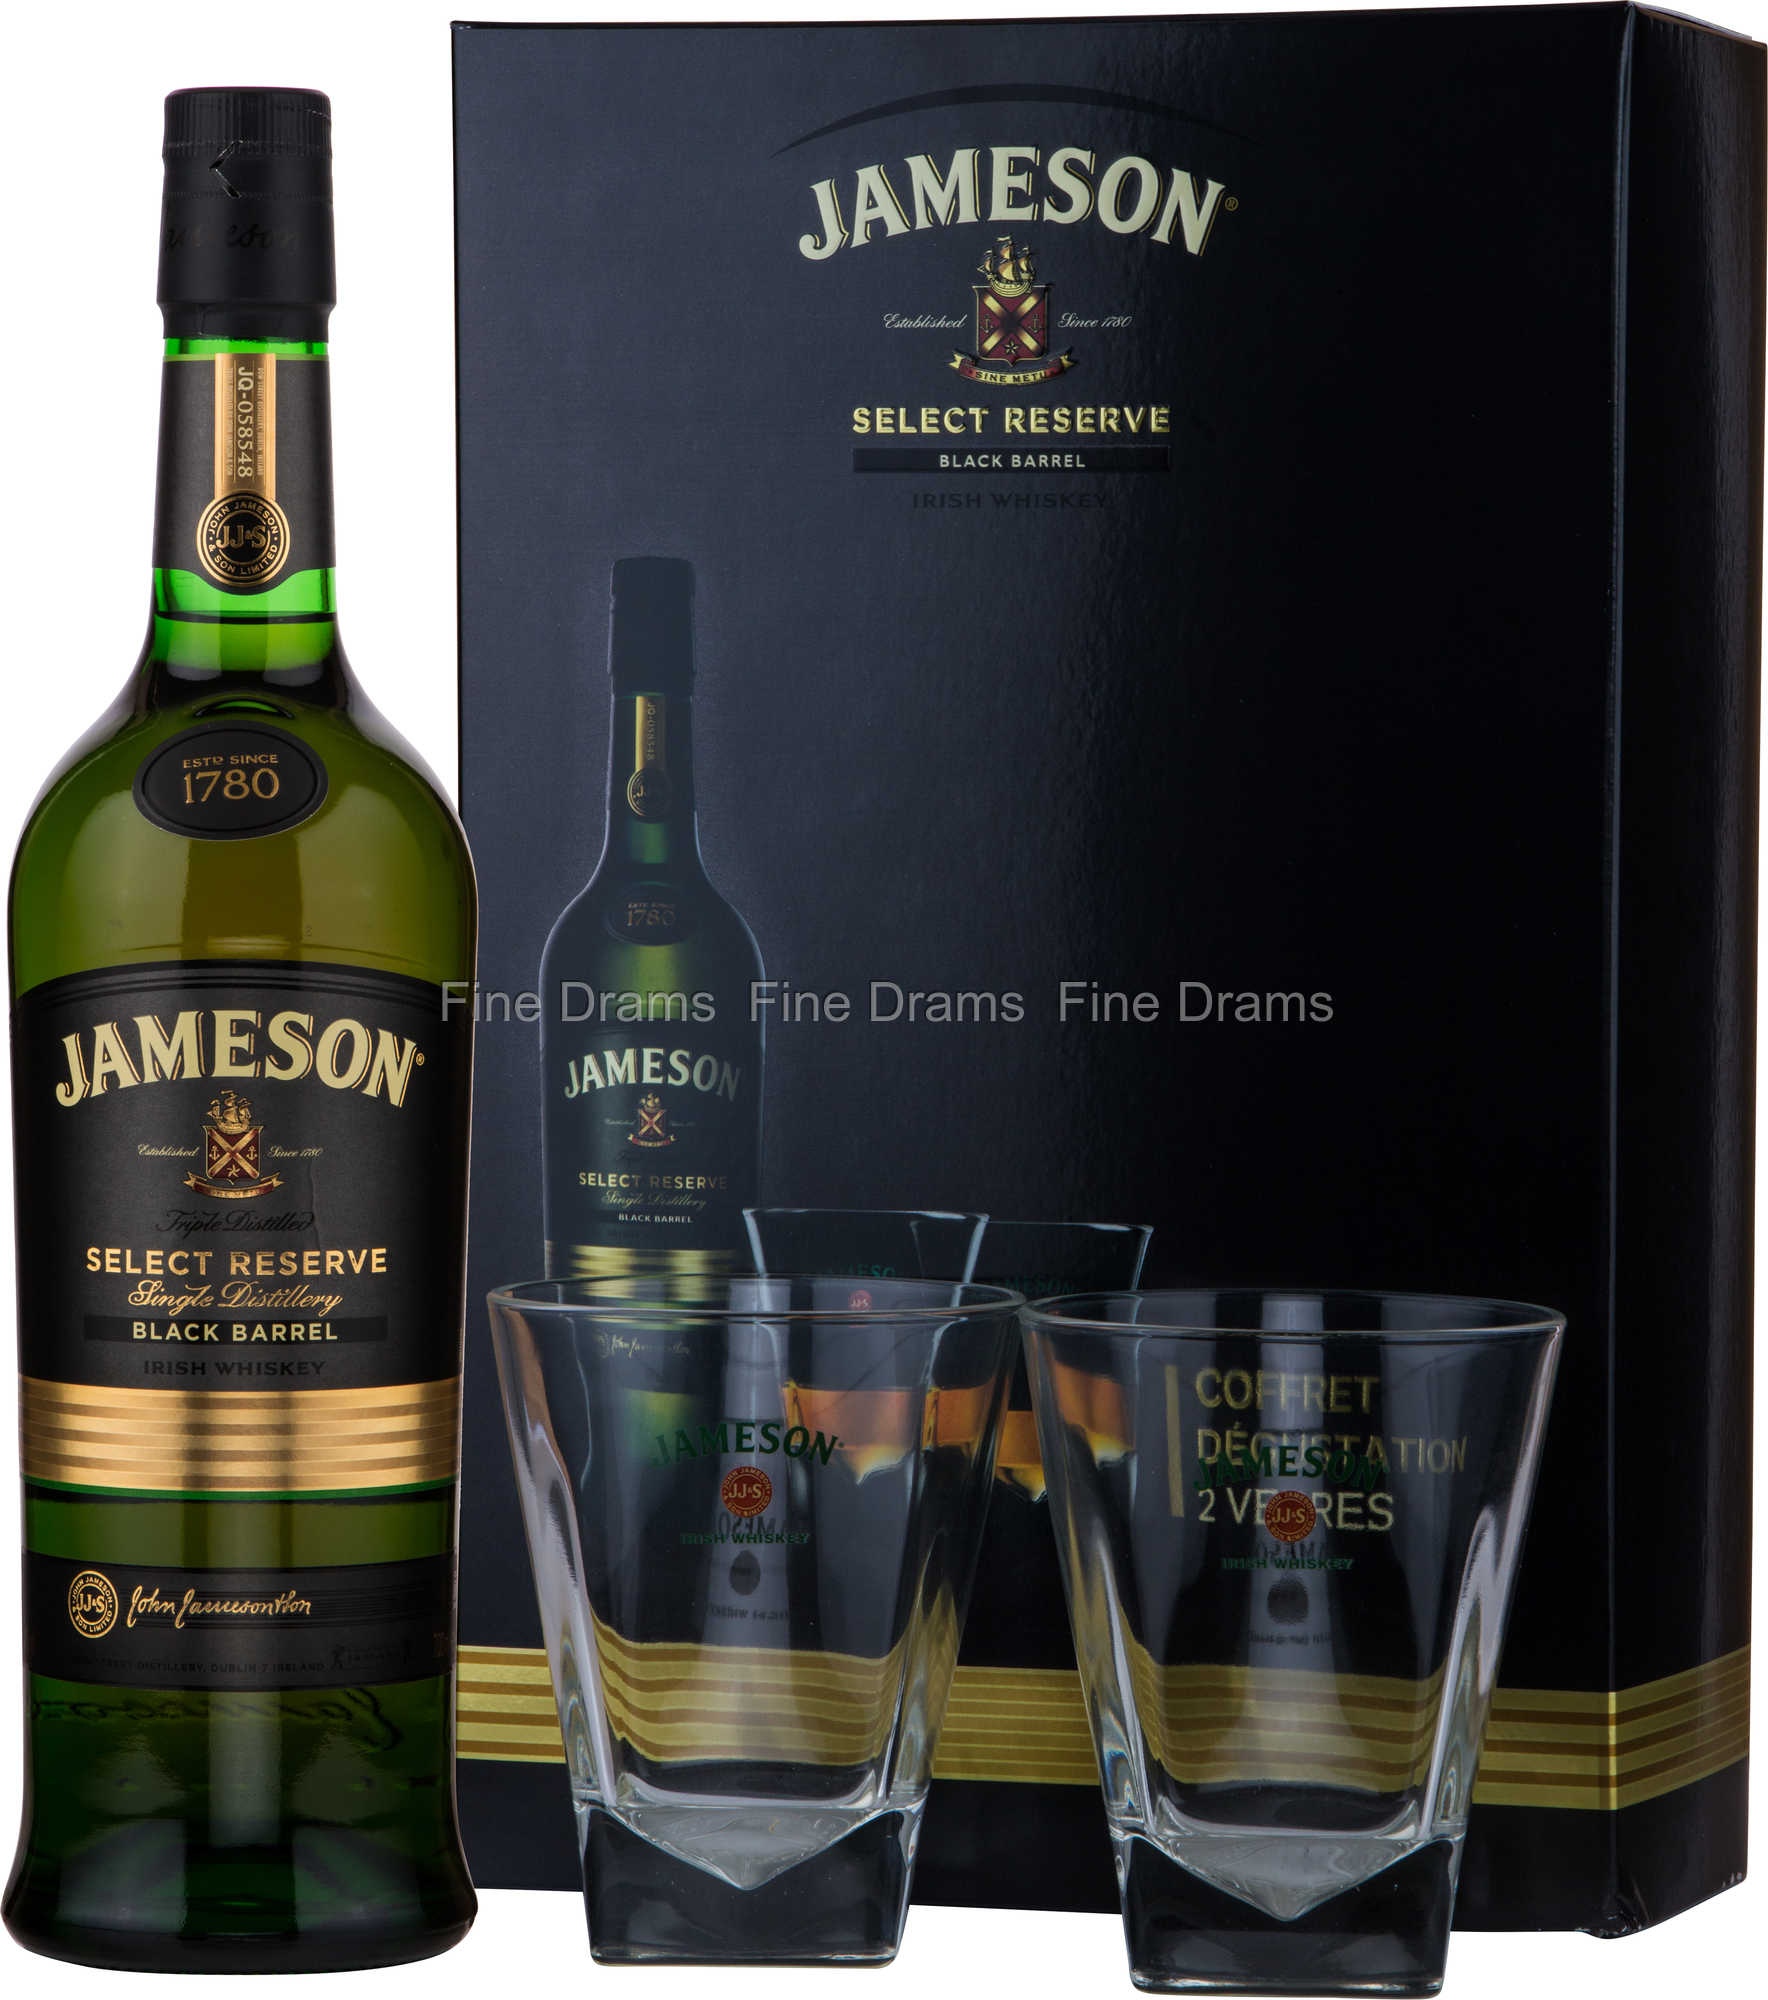 jameson select reserve black barrel whisky gift pack 2. Black Bedroom Furniture Sets. Home Design Ideas